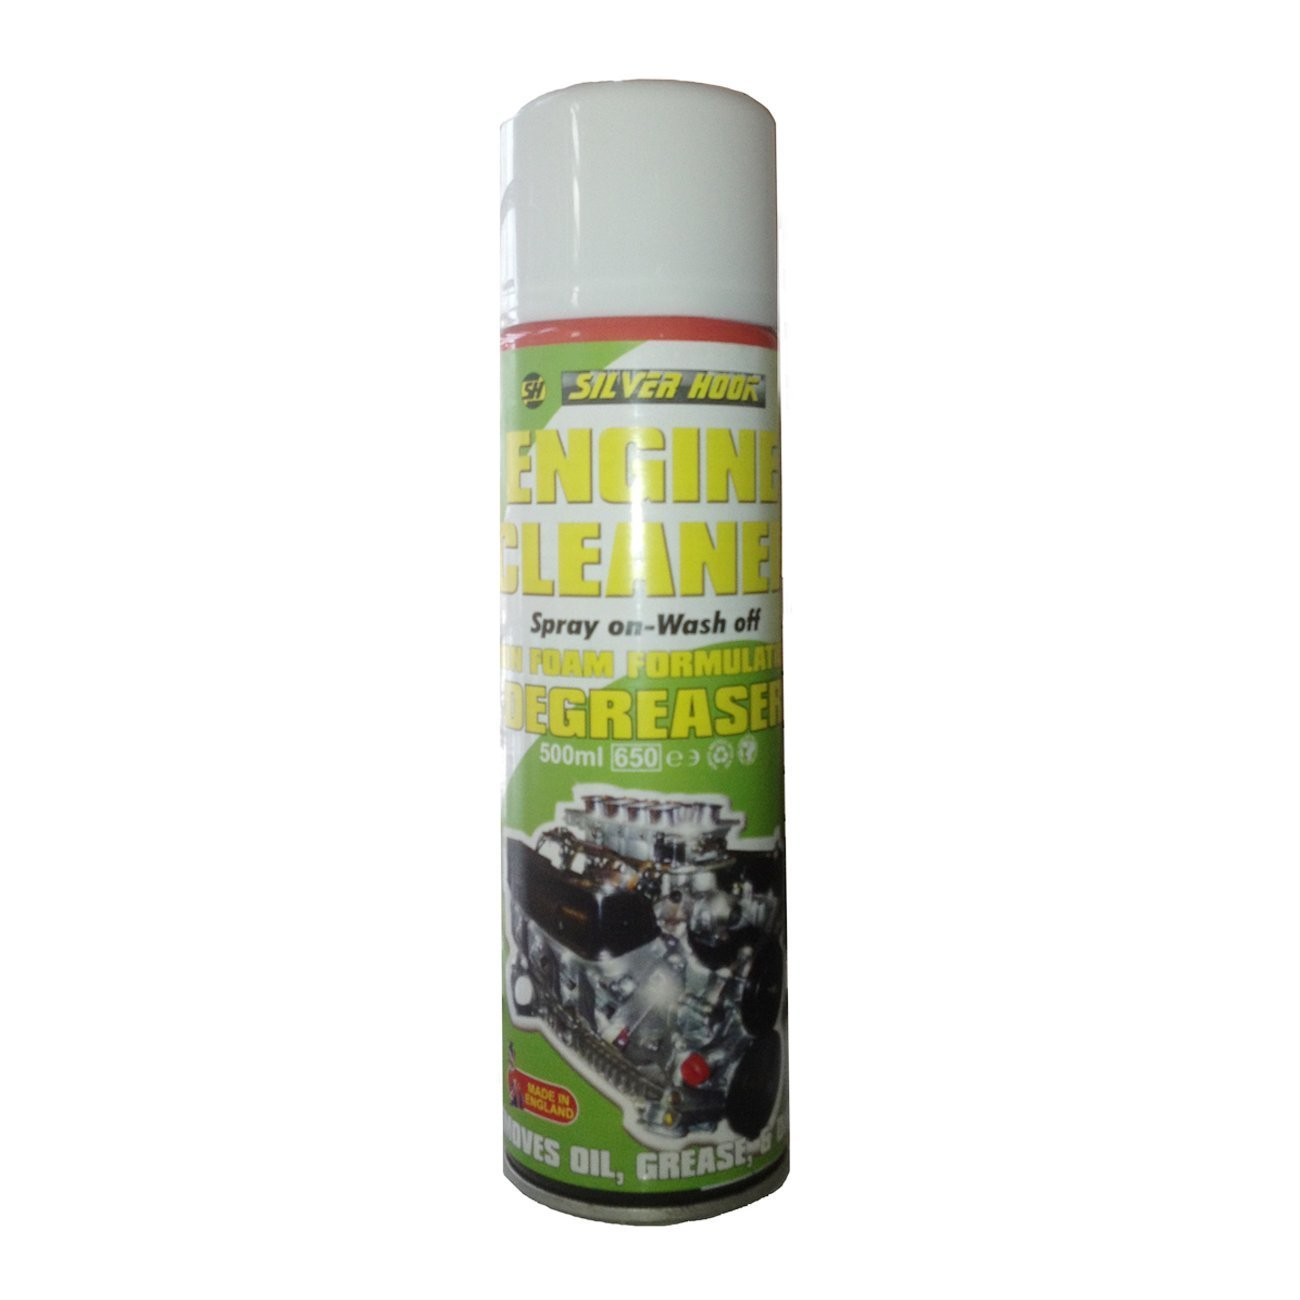 Silverhook SGDG1 Engine Cleaner and Degreaser 500 ml Silverhook ltd